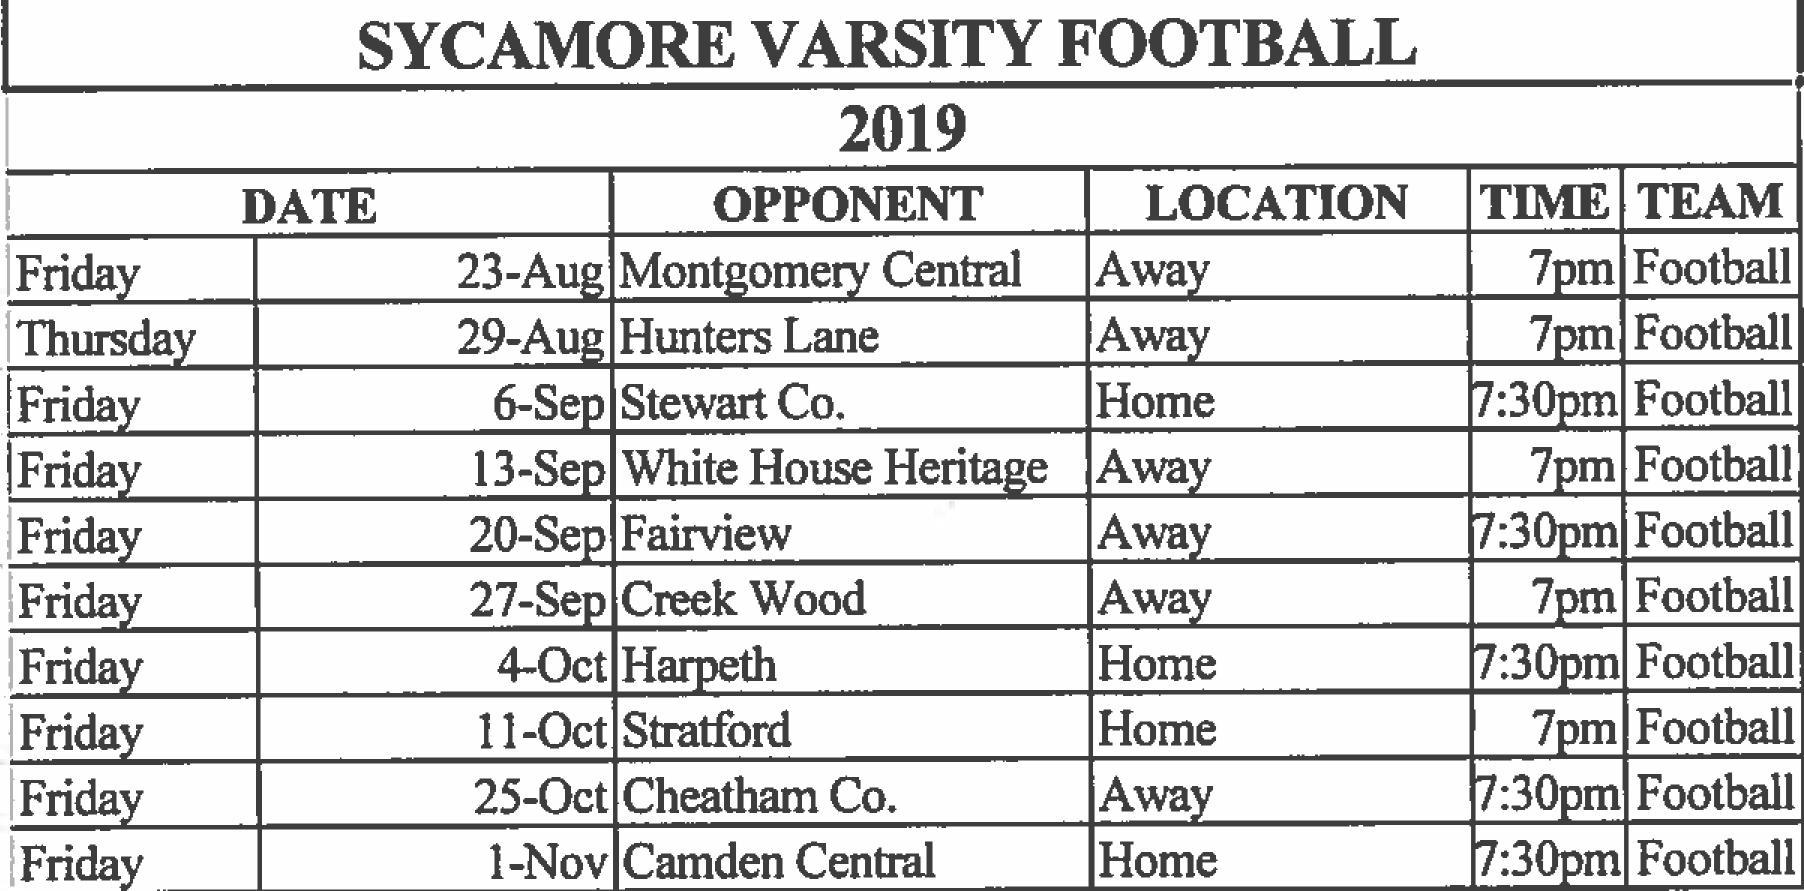 2019 Sycamore Football Schedule